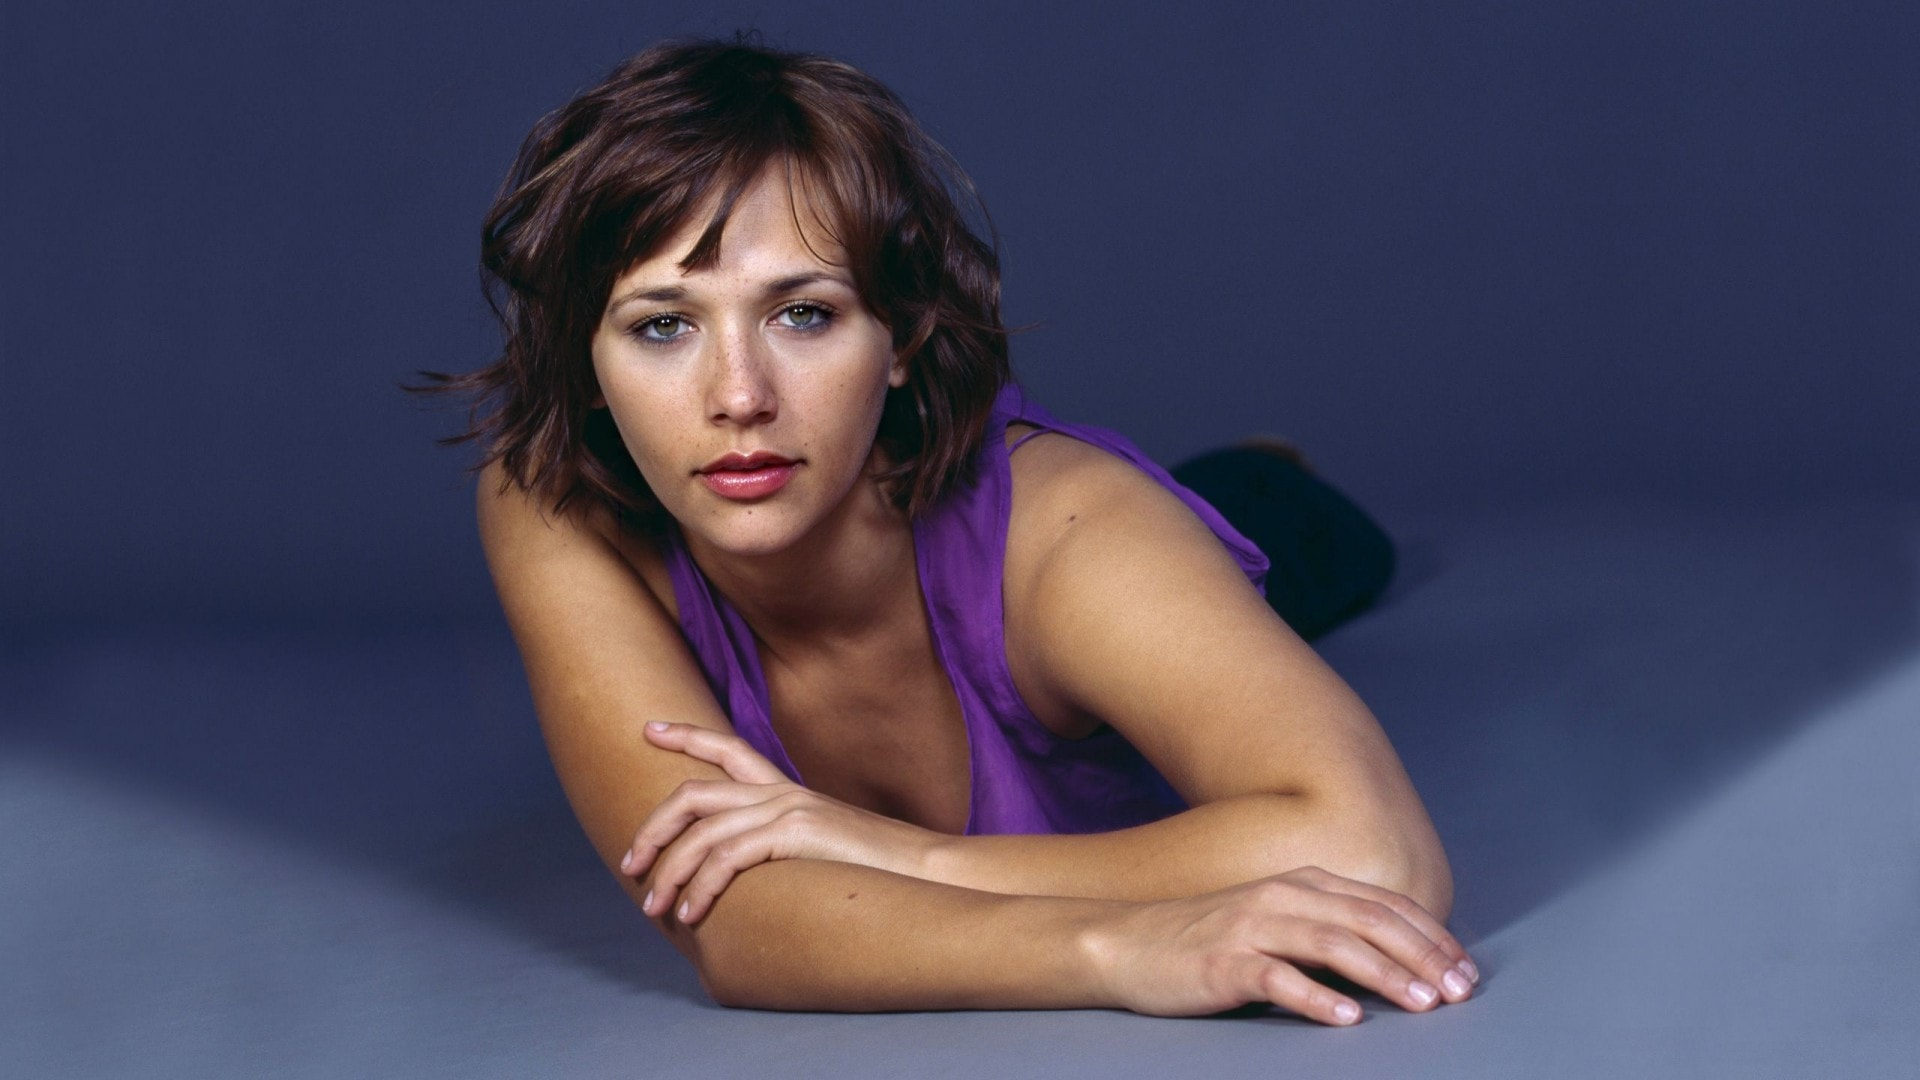 Rashida Jones HQ wallpapers